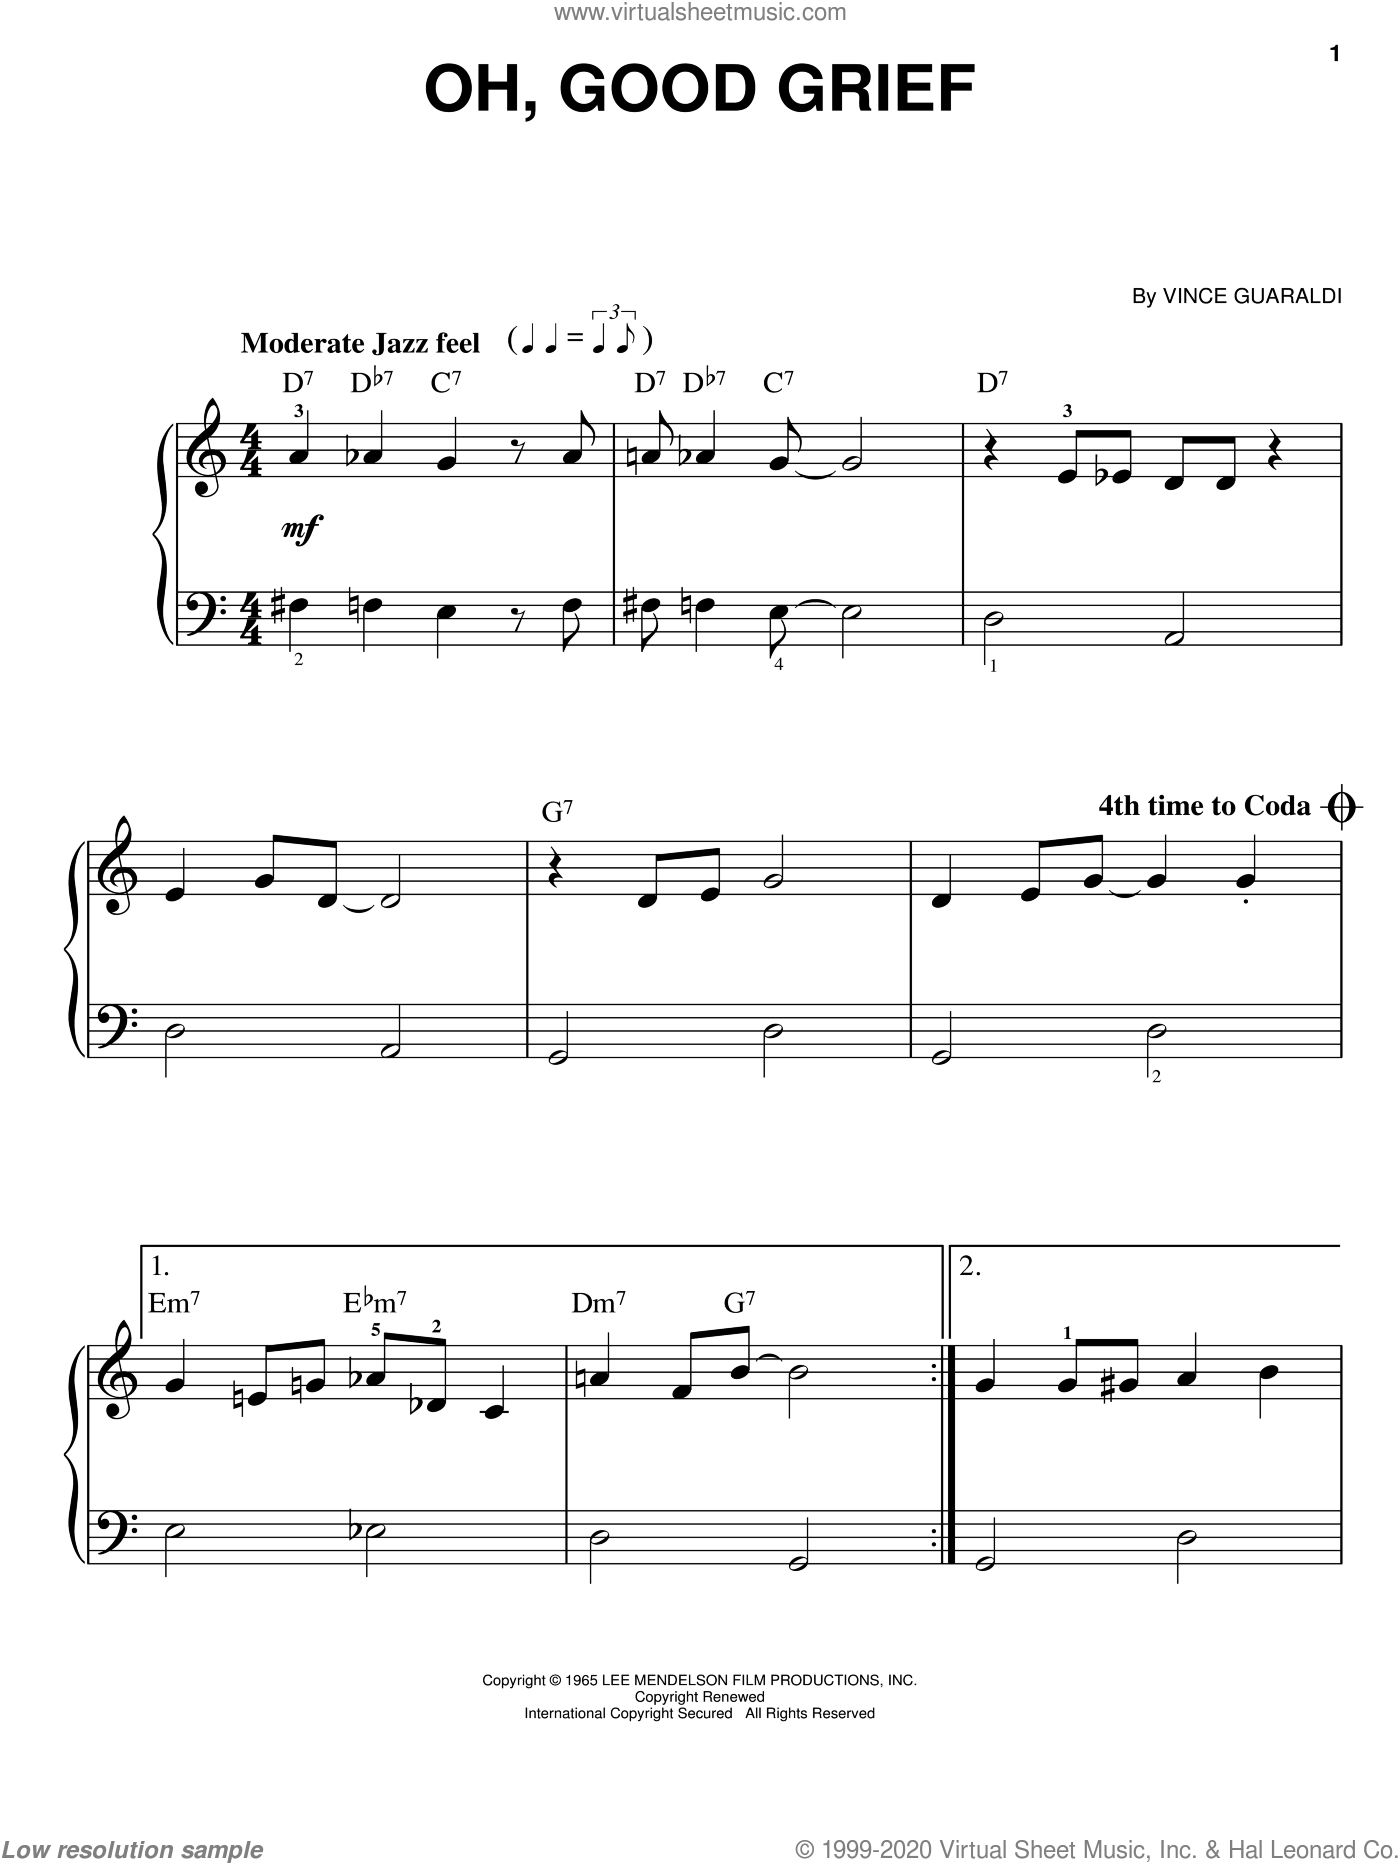 Oh, Good Grief sheet music for piano solo (chords) by Vince Guaraldi